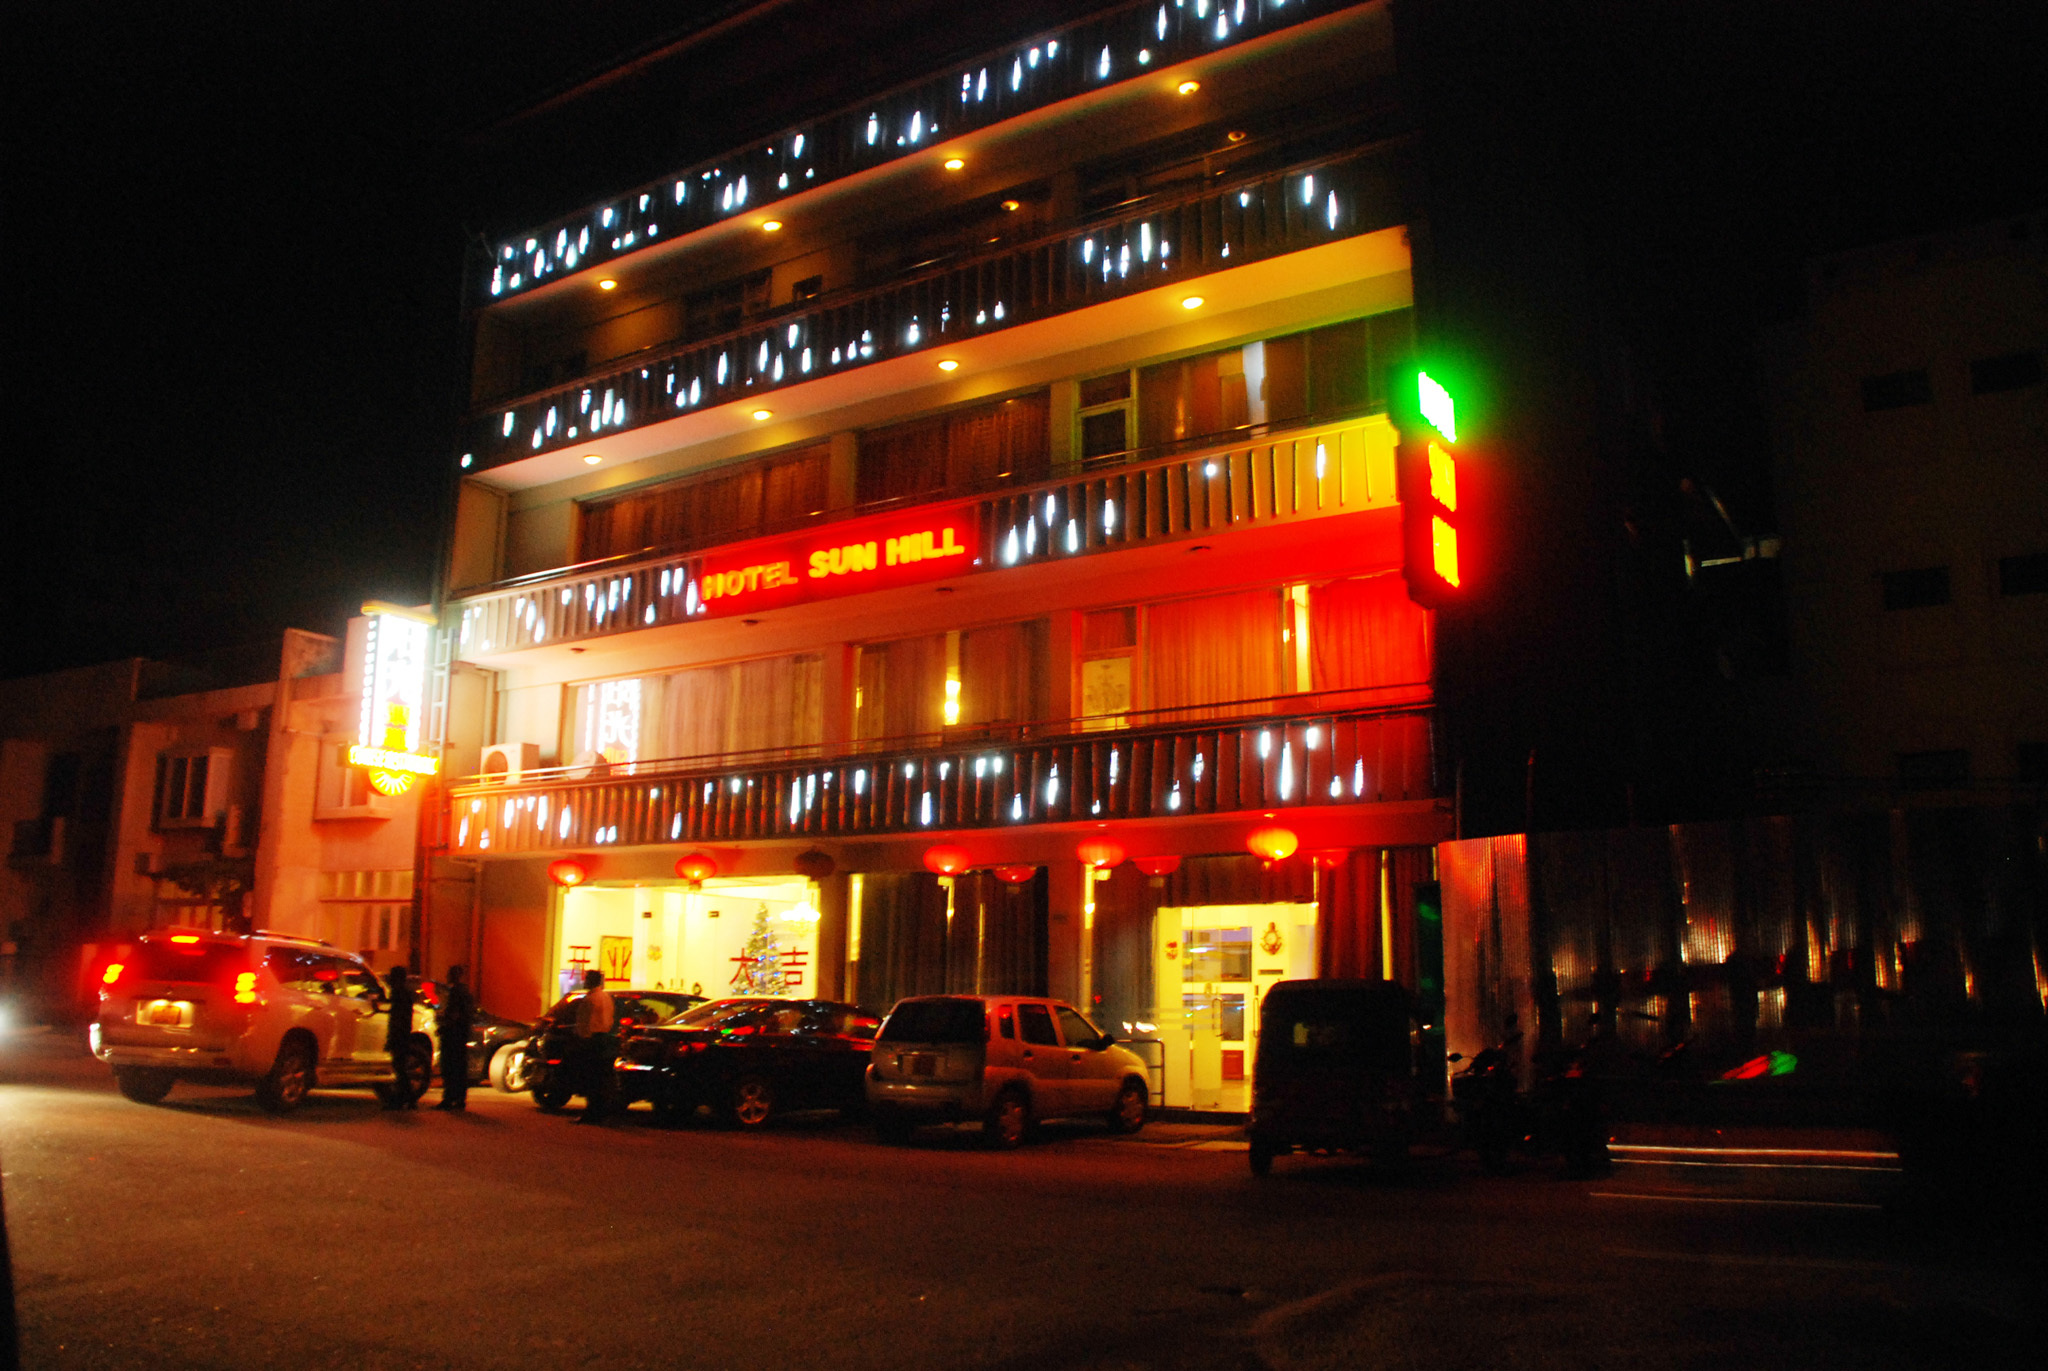 Sunhill Hotel is a hotel in Colombo